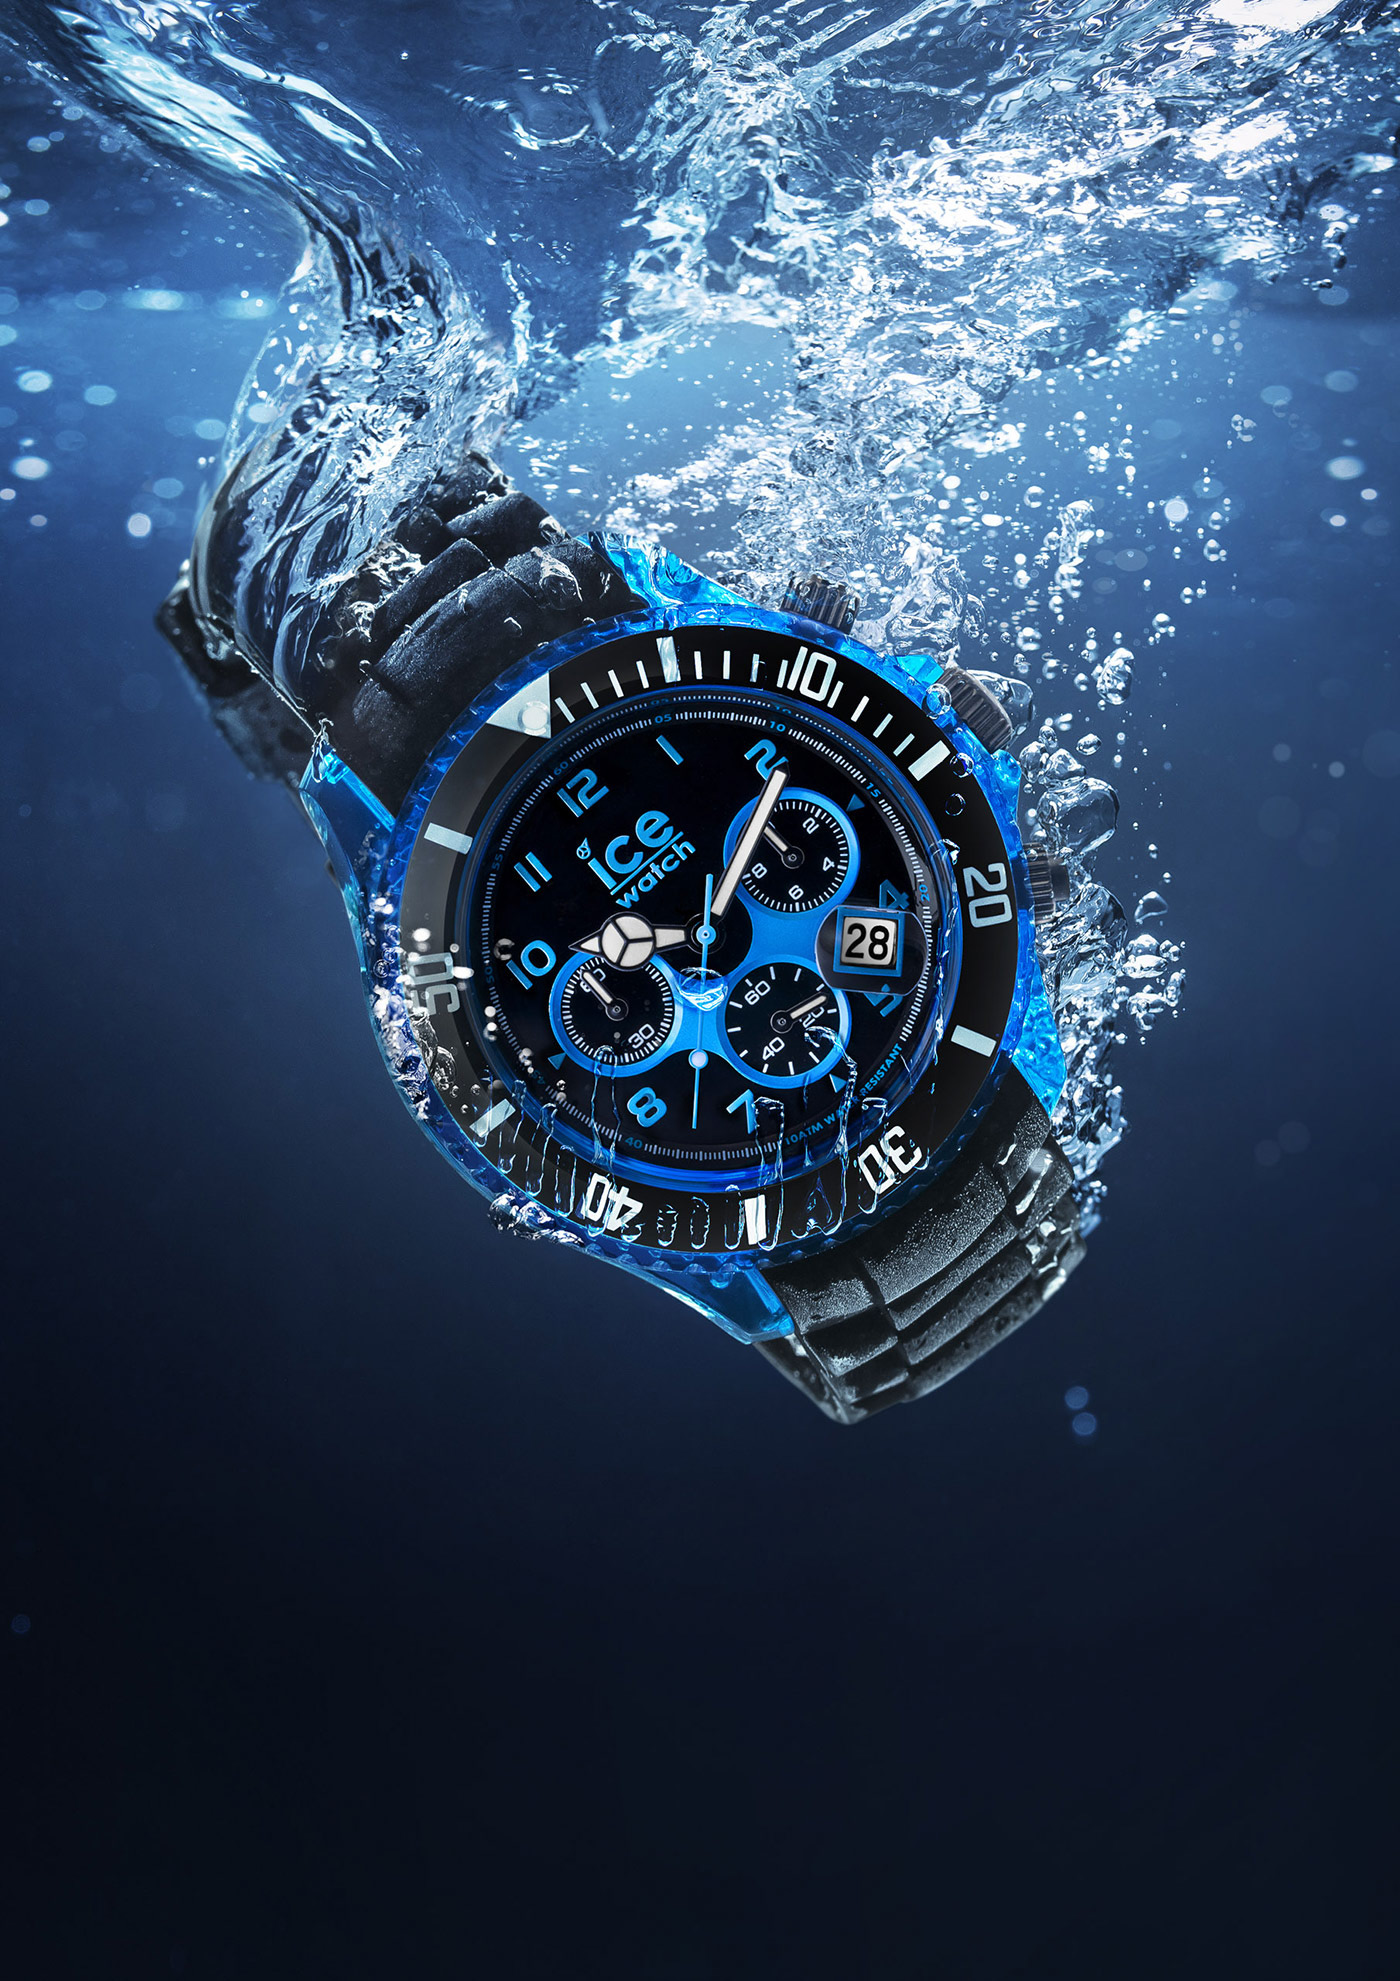 montres watches ice watch 10 atm water resistant blue